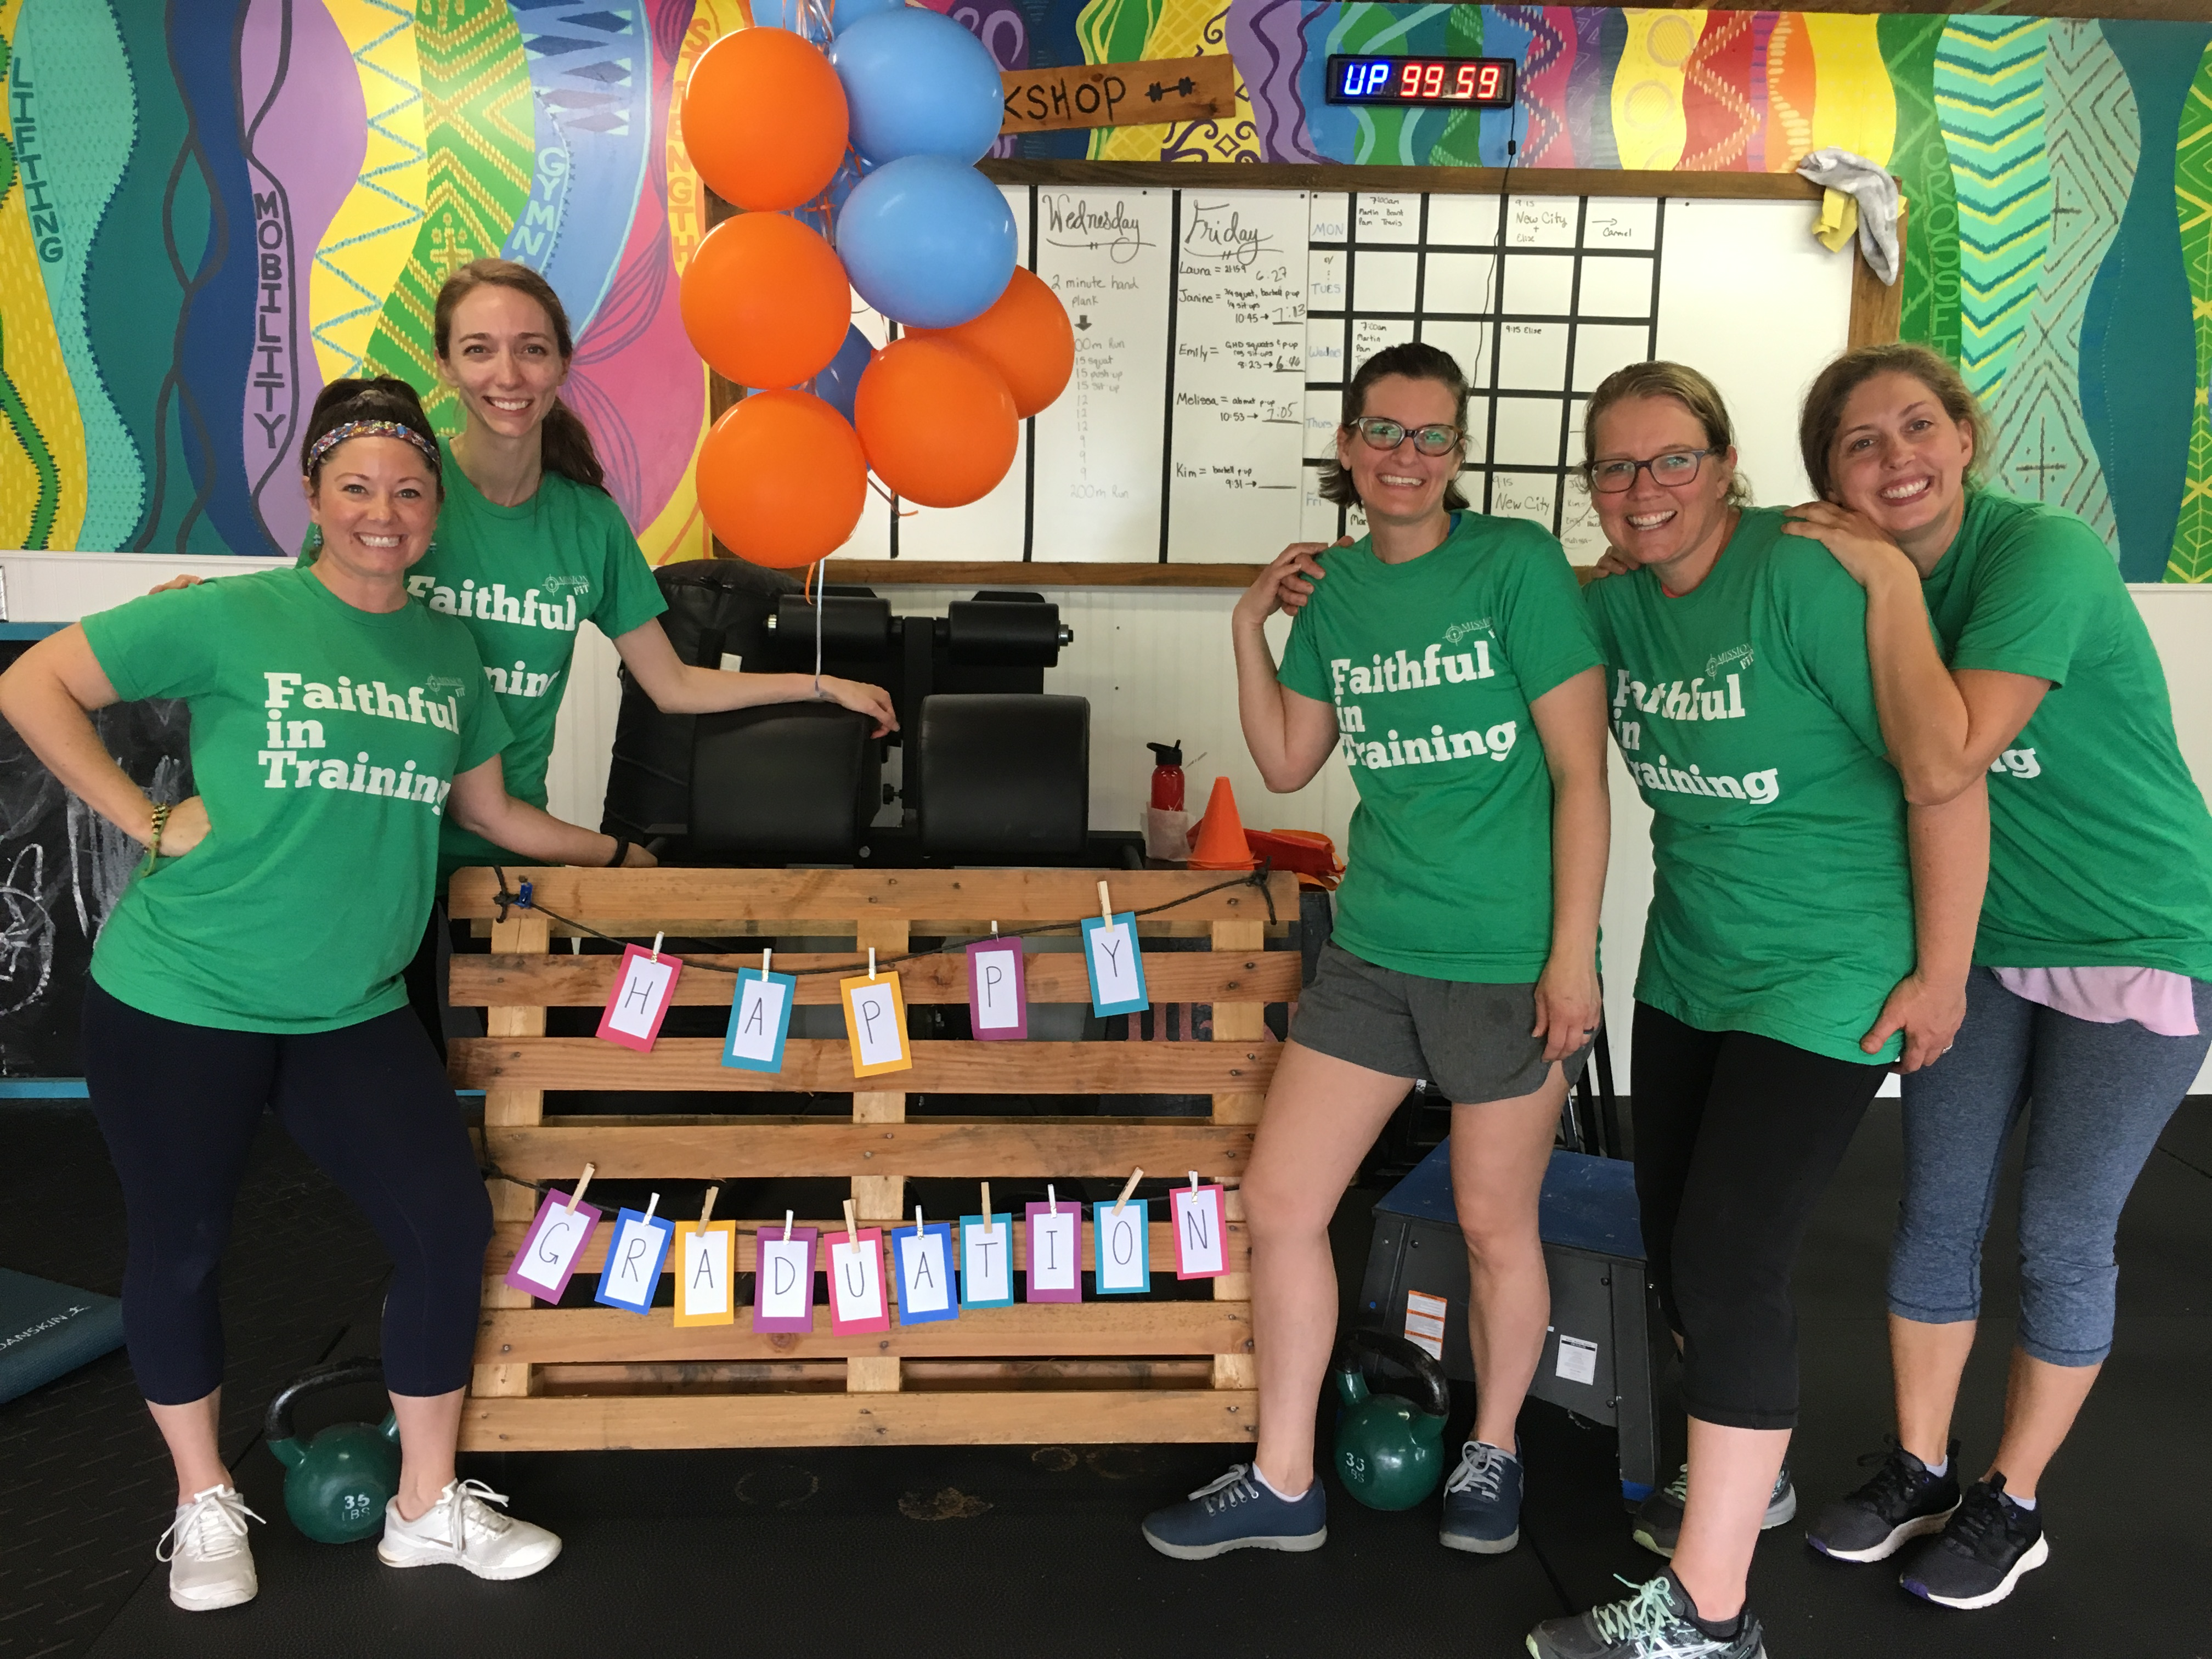 Amazing G-Race, picture of 4 ladies in green shirts posing for the camera